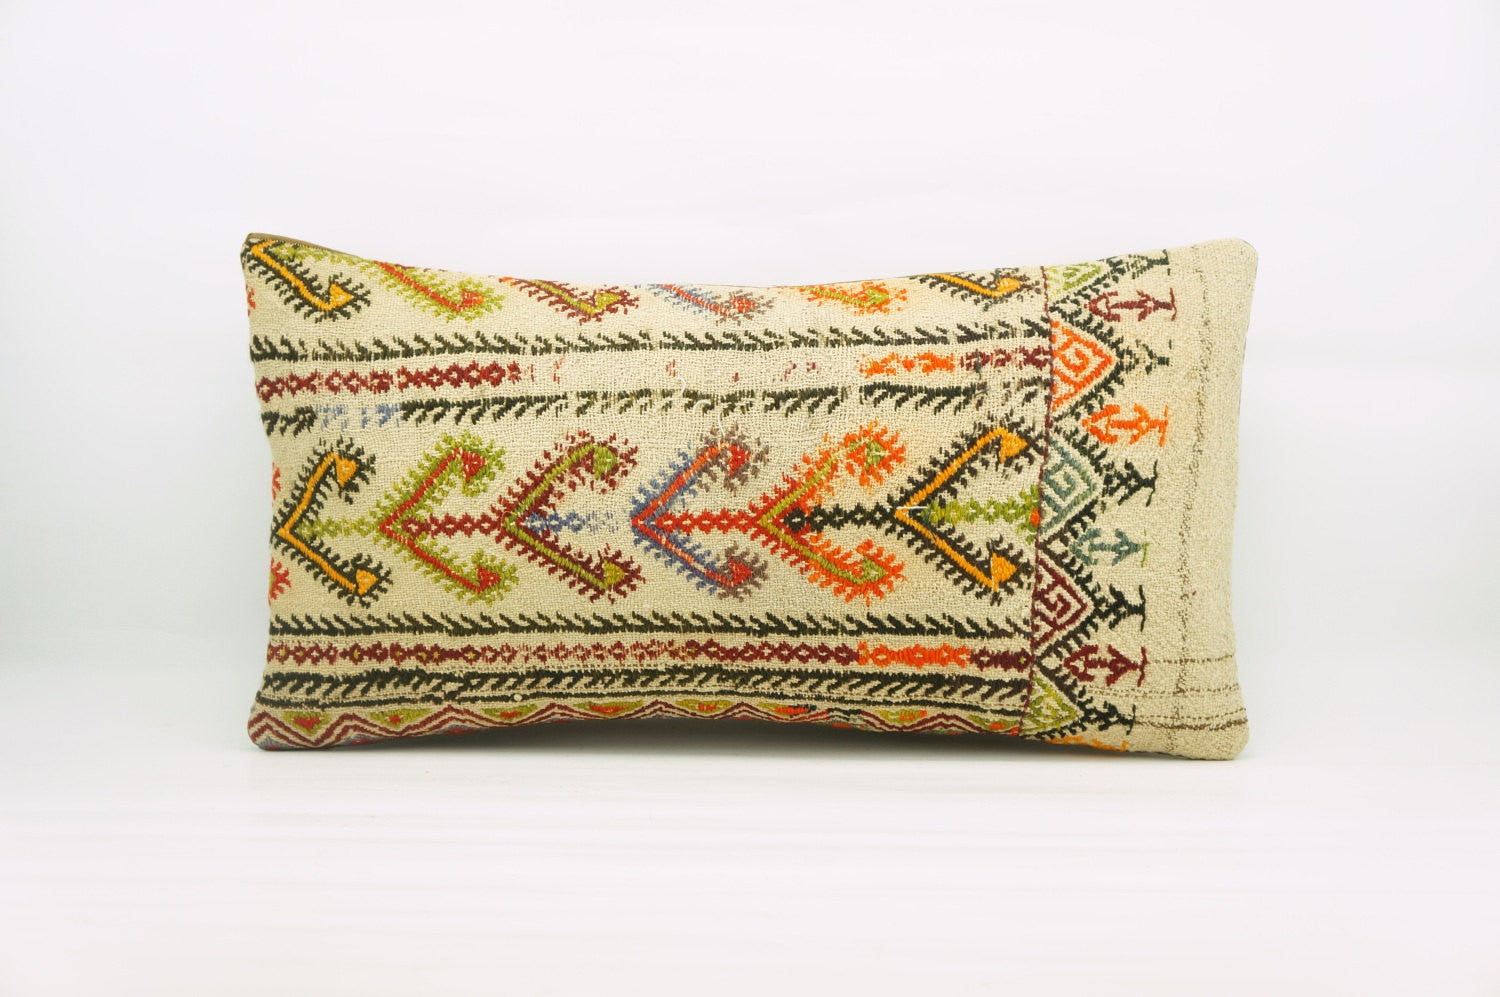 12x24  Geometric kilim pillow sham, Tribal cushion cover, Handwoven pillowcase , mid century decor multi colour 1215